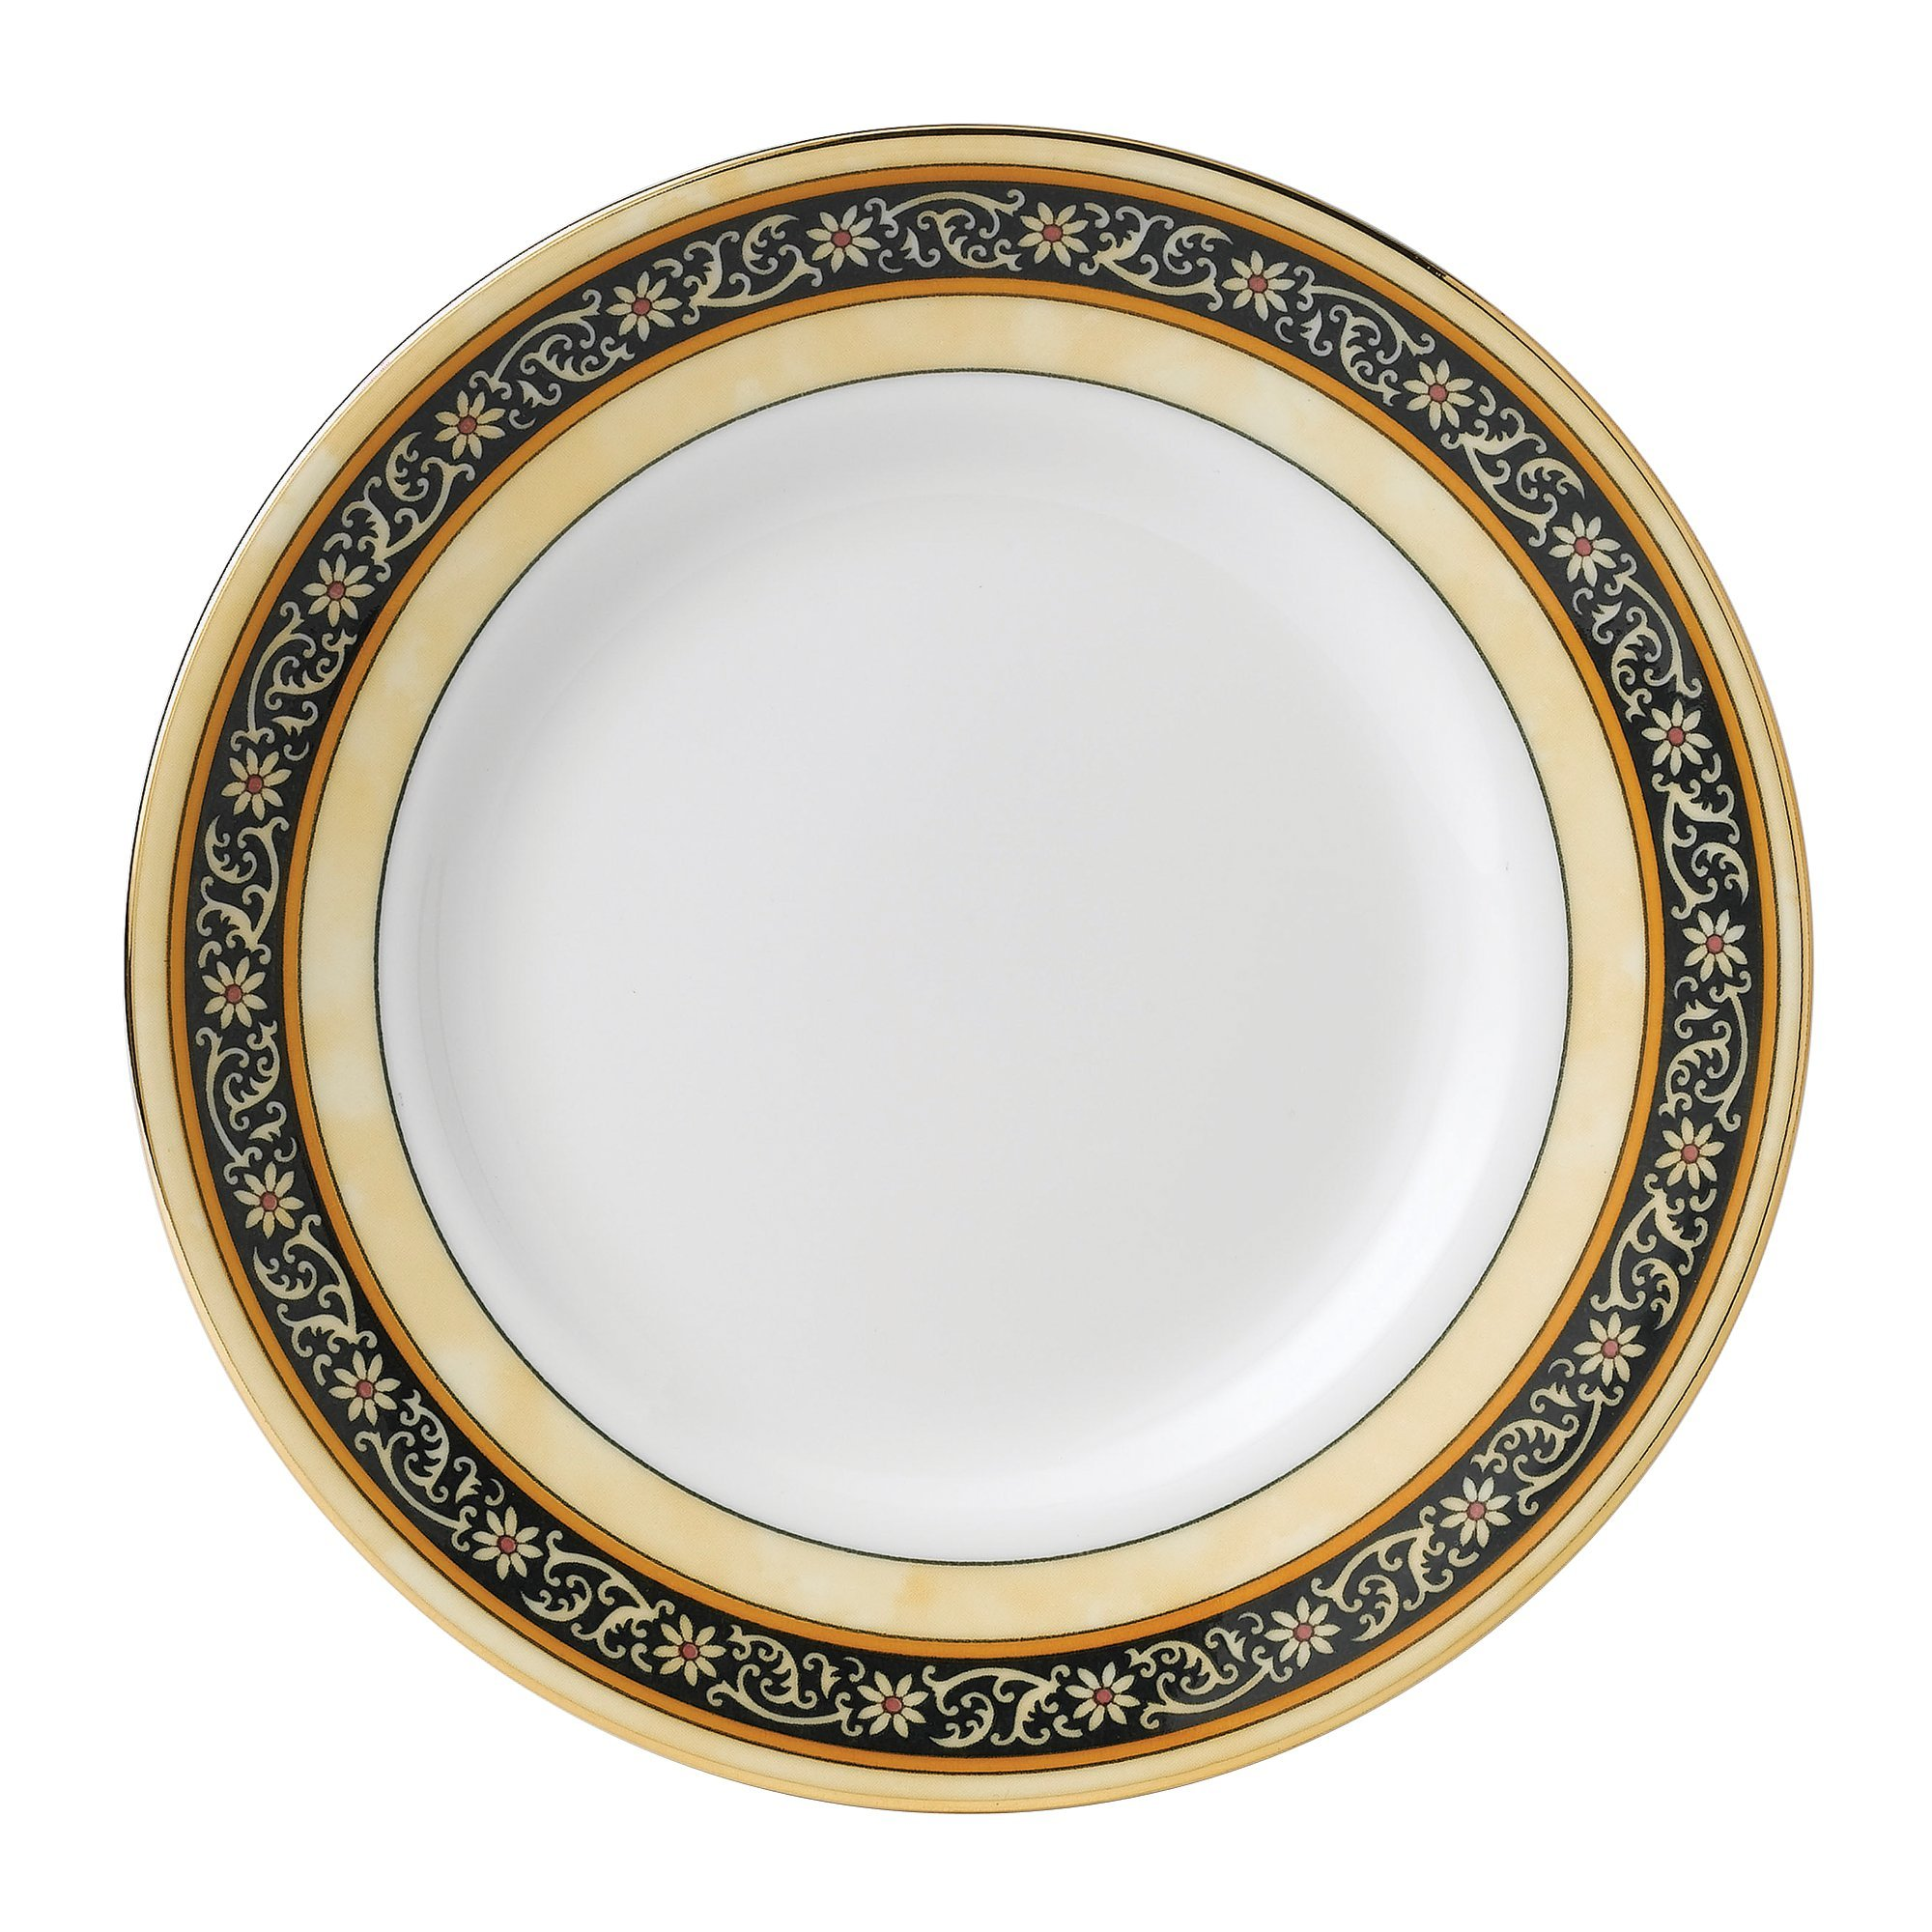 Wedgwood India Bread and Butter Plate, 6'', Multicolor